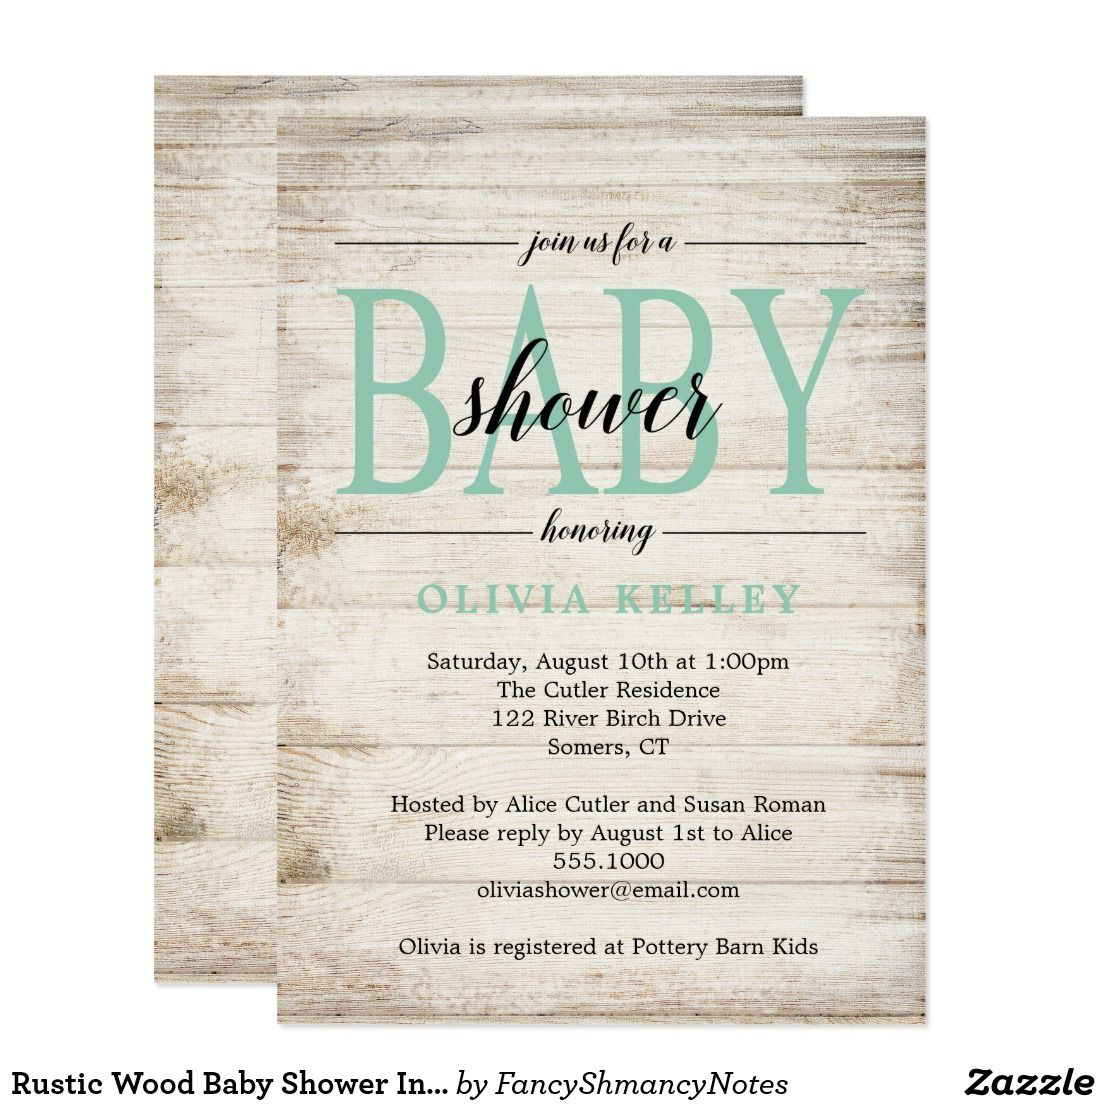 Rustic wood baby shower invitation mint green card shower rustic wood baby shower invitation mint green card filmwisefo